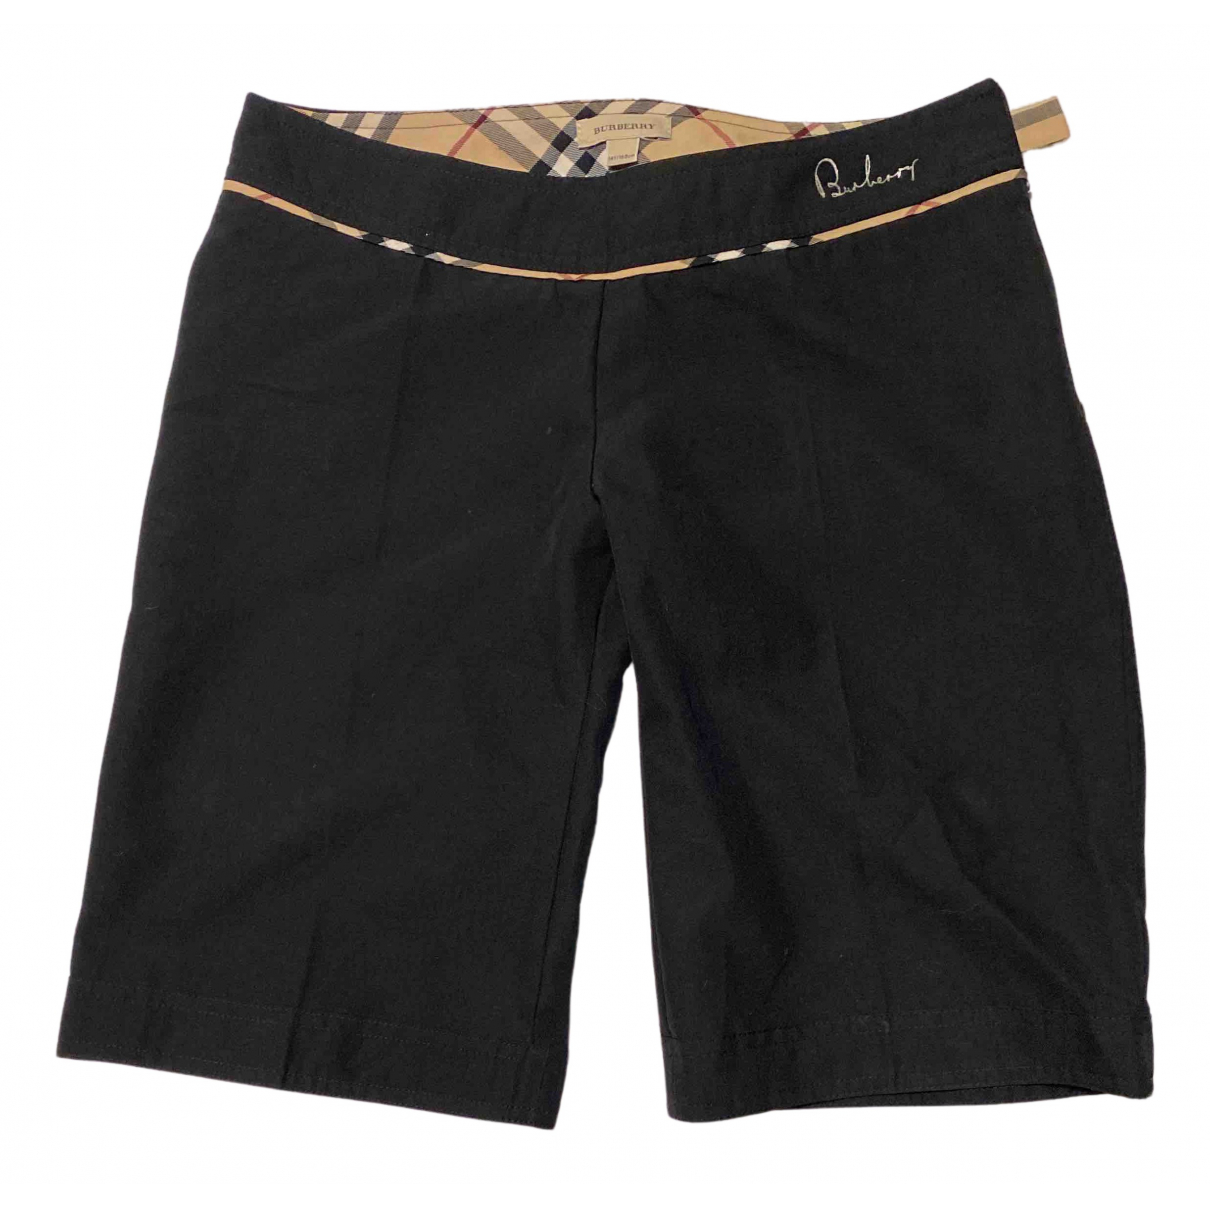 Burberry N Black Cotton Shorts for Kids 14 years - S FR